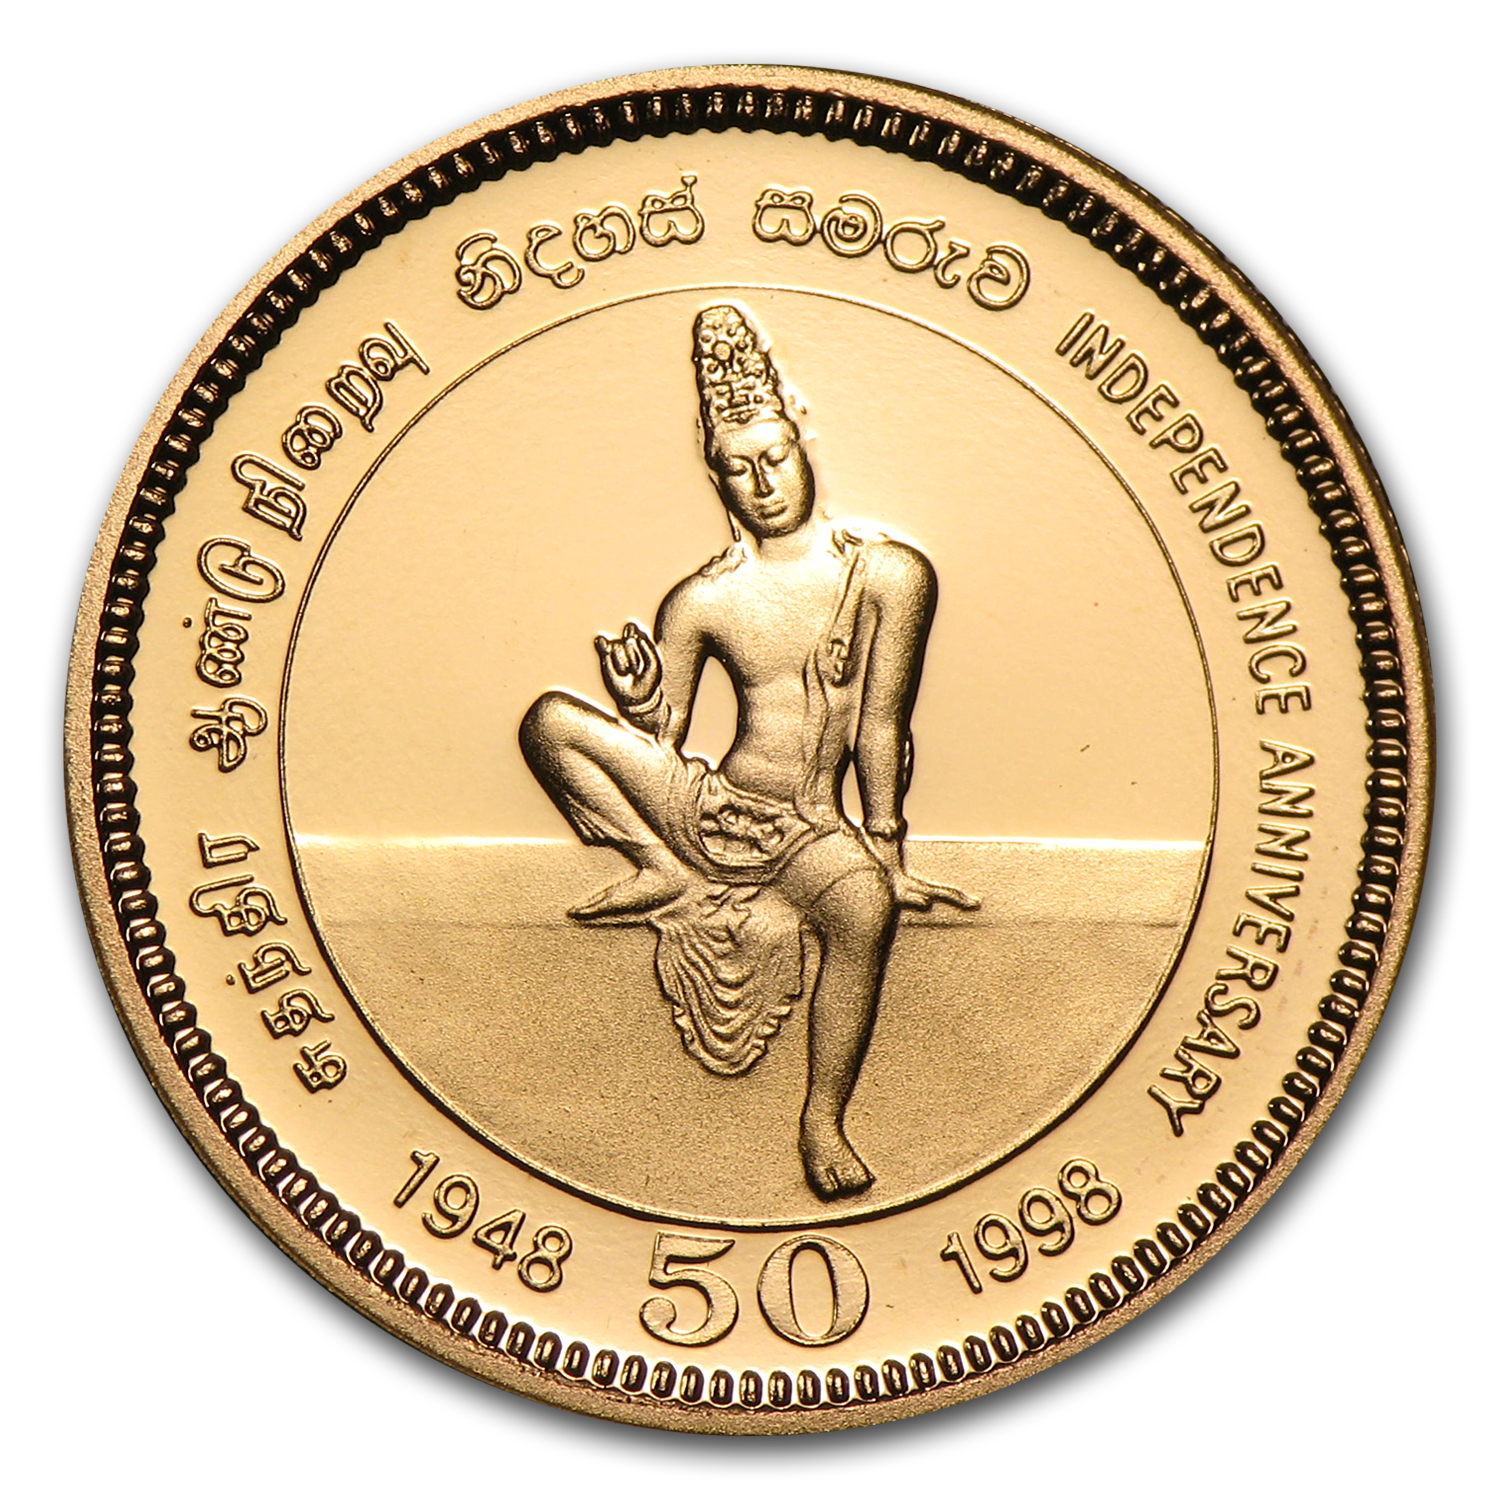 1998 Sri Lanka Gold 5000 Rupees Independence Proof